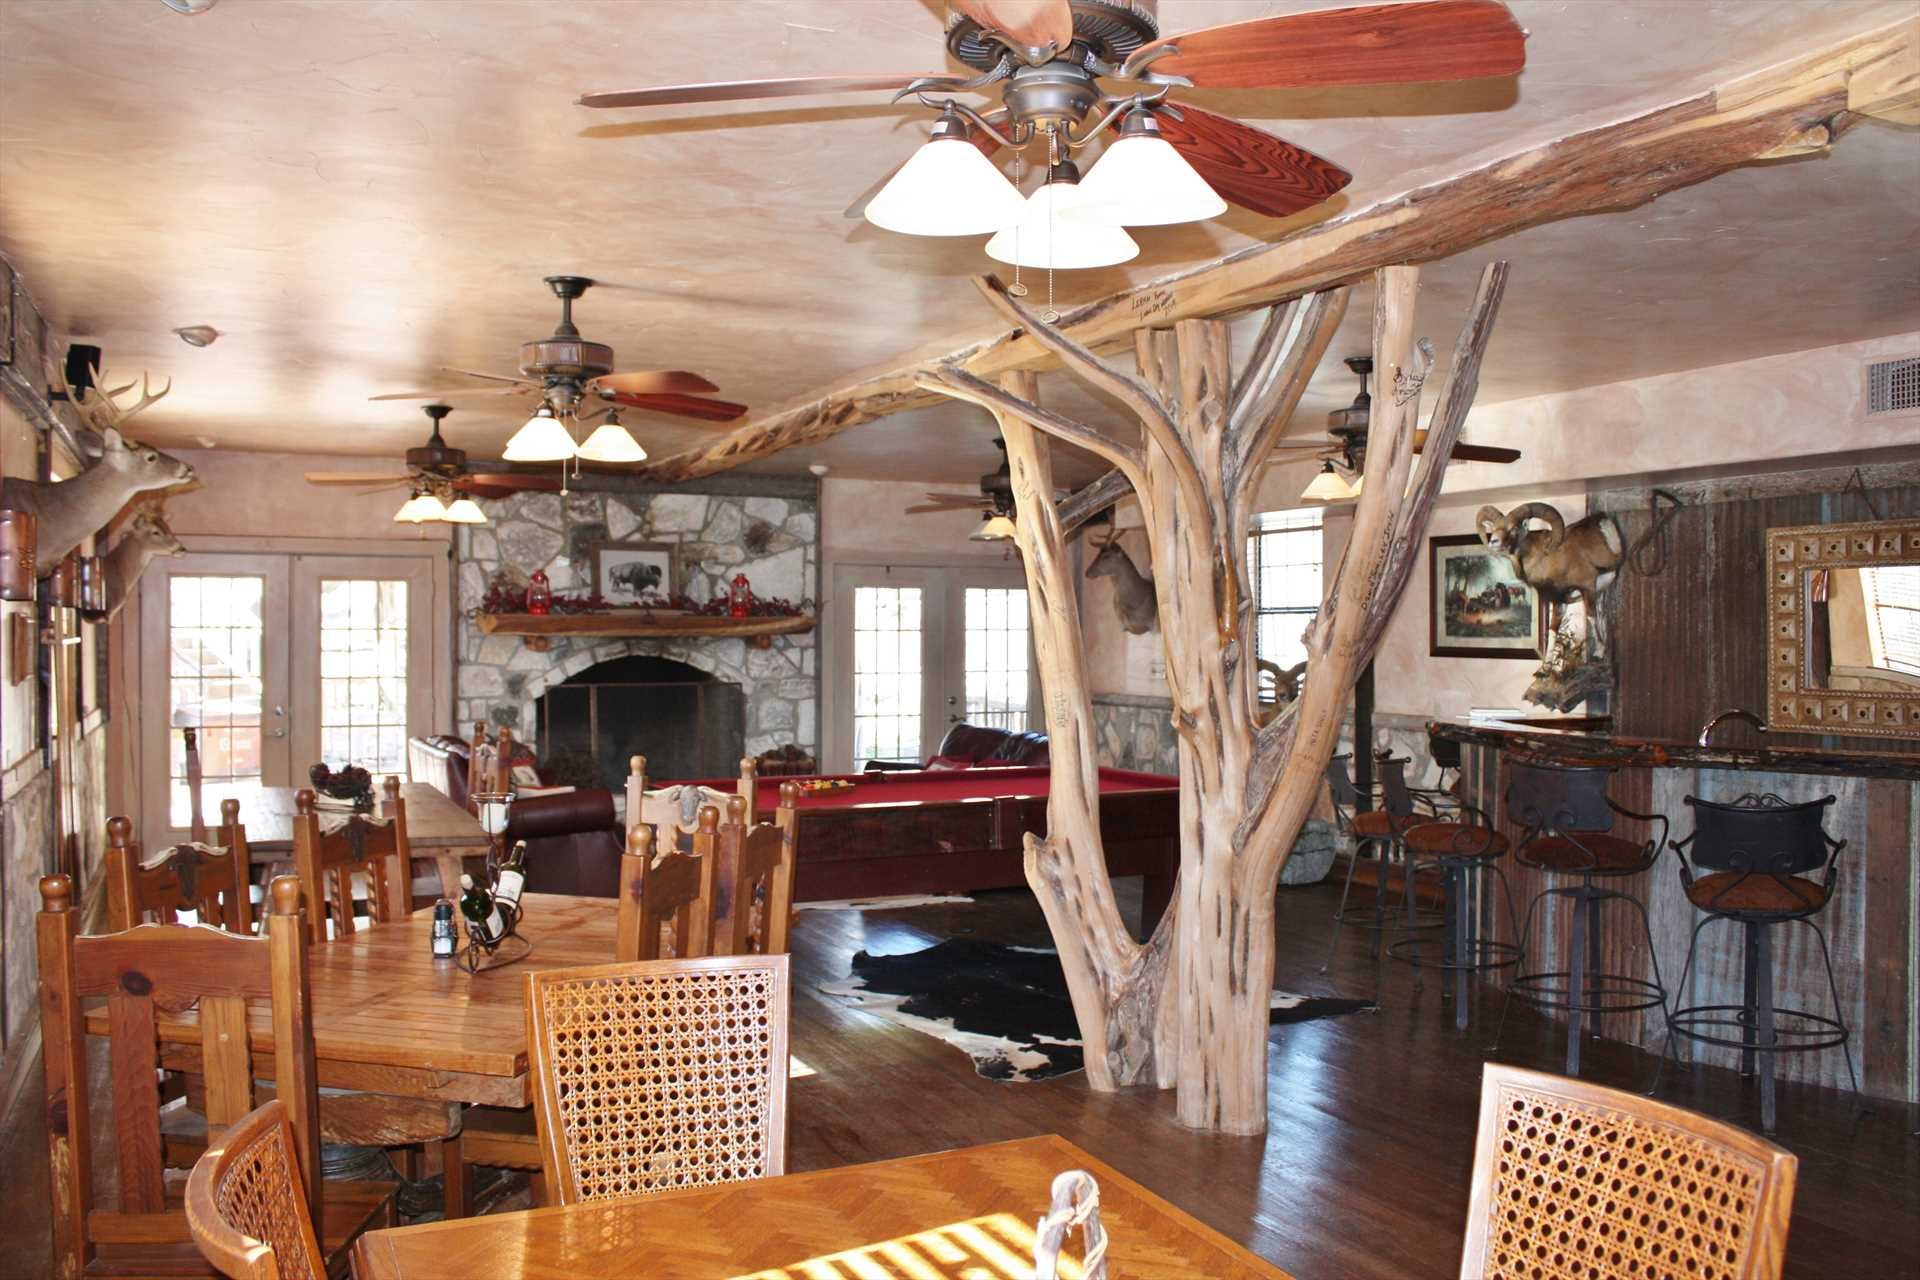 The dining room and bar area have room for plenty of guests-and check out that vintage bar mirror!